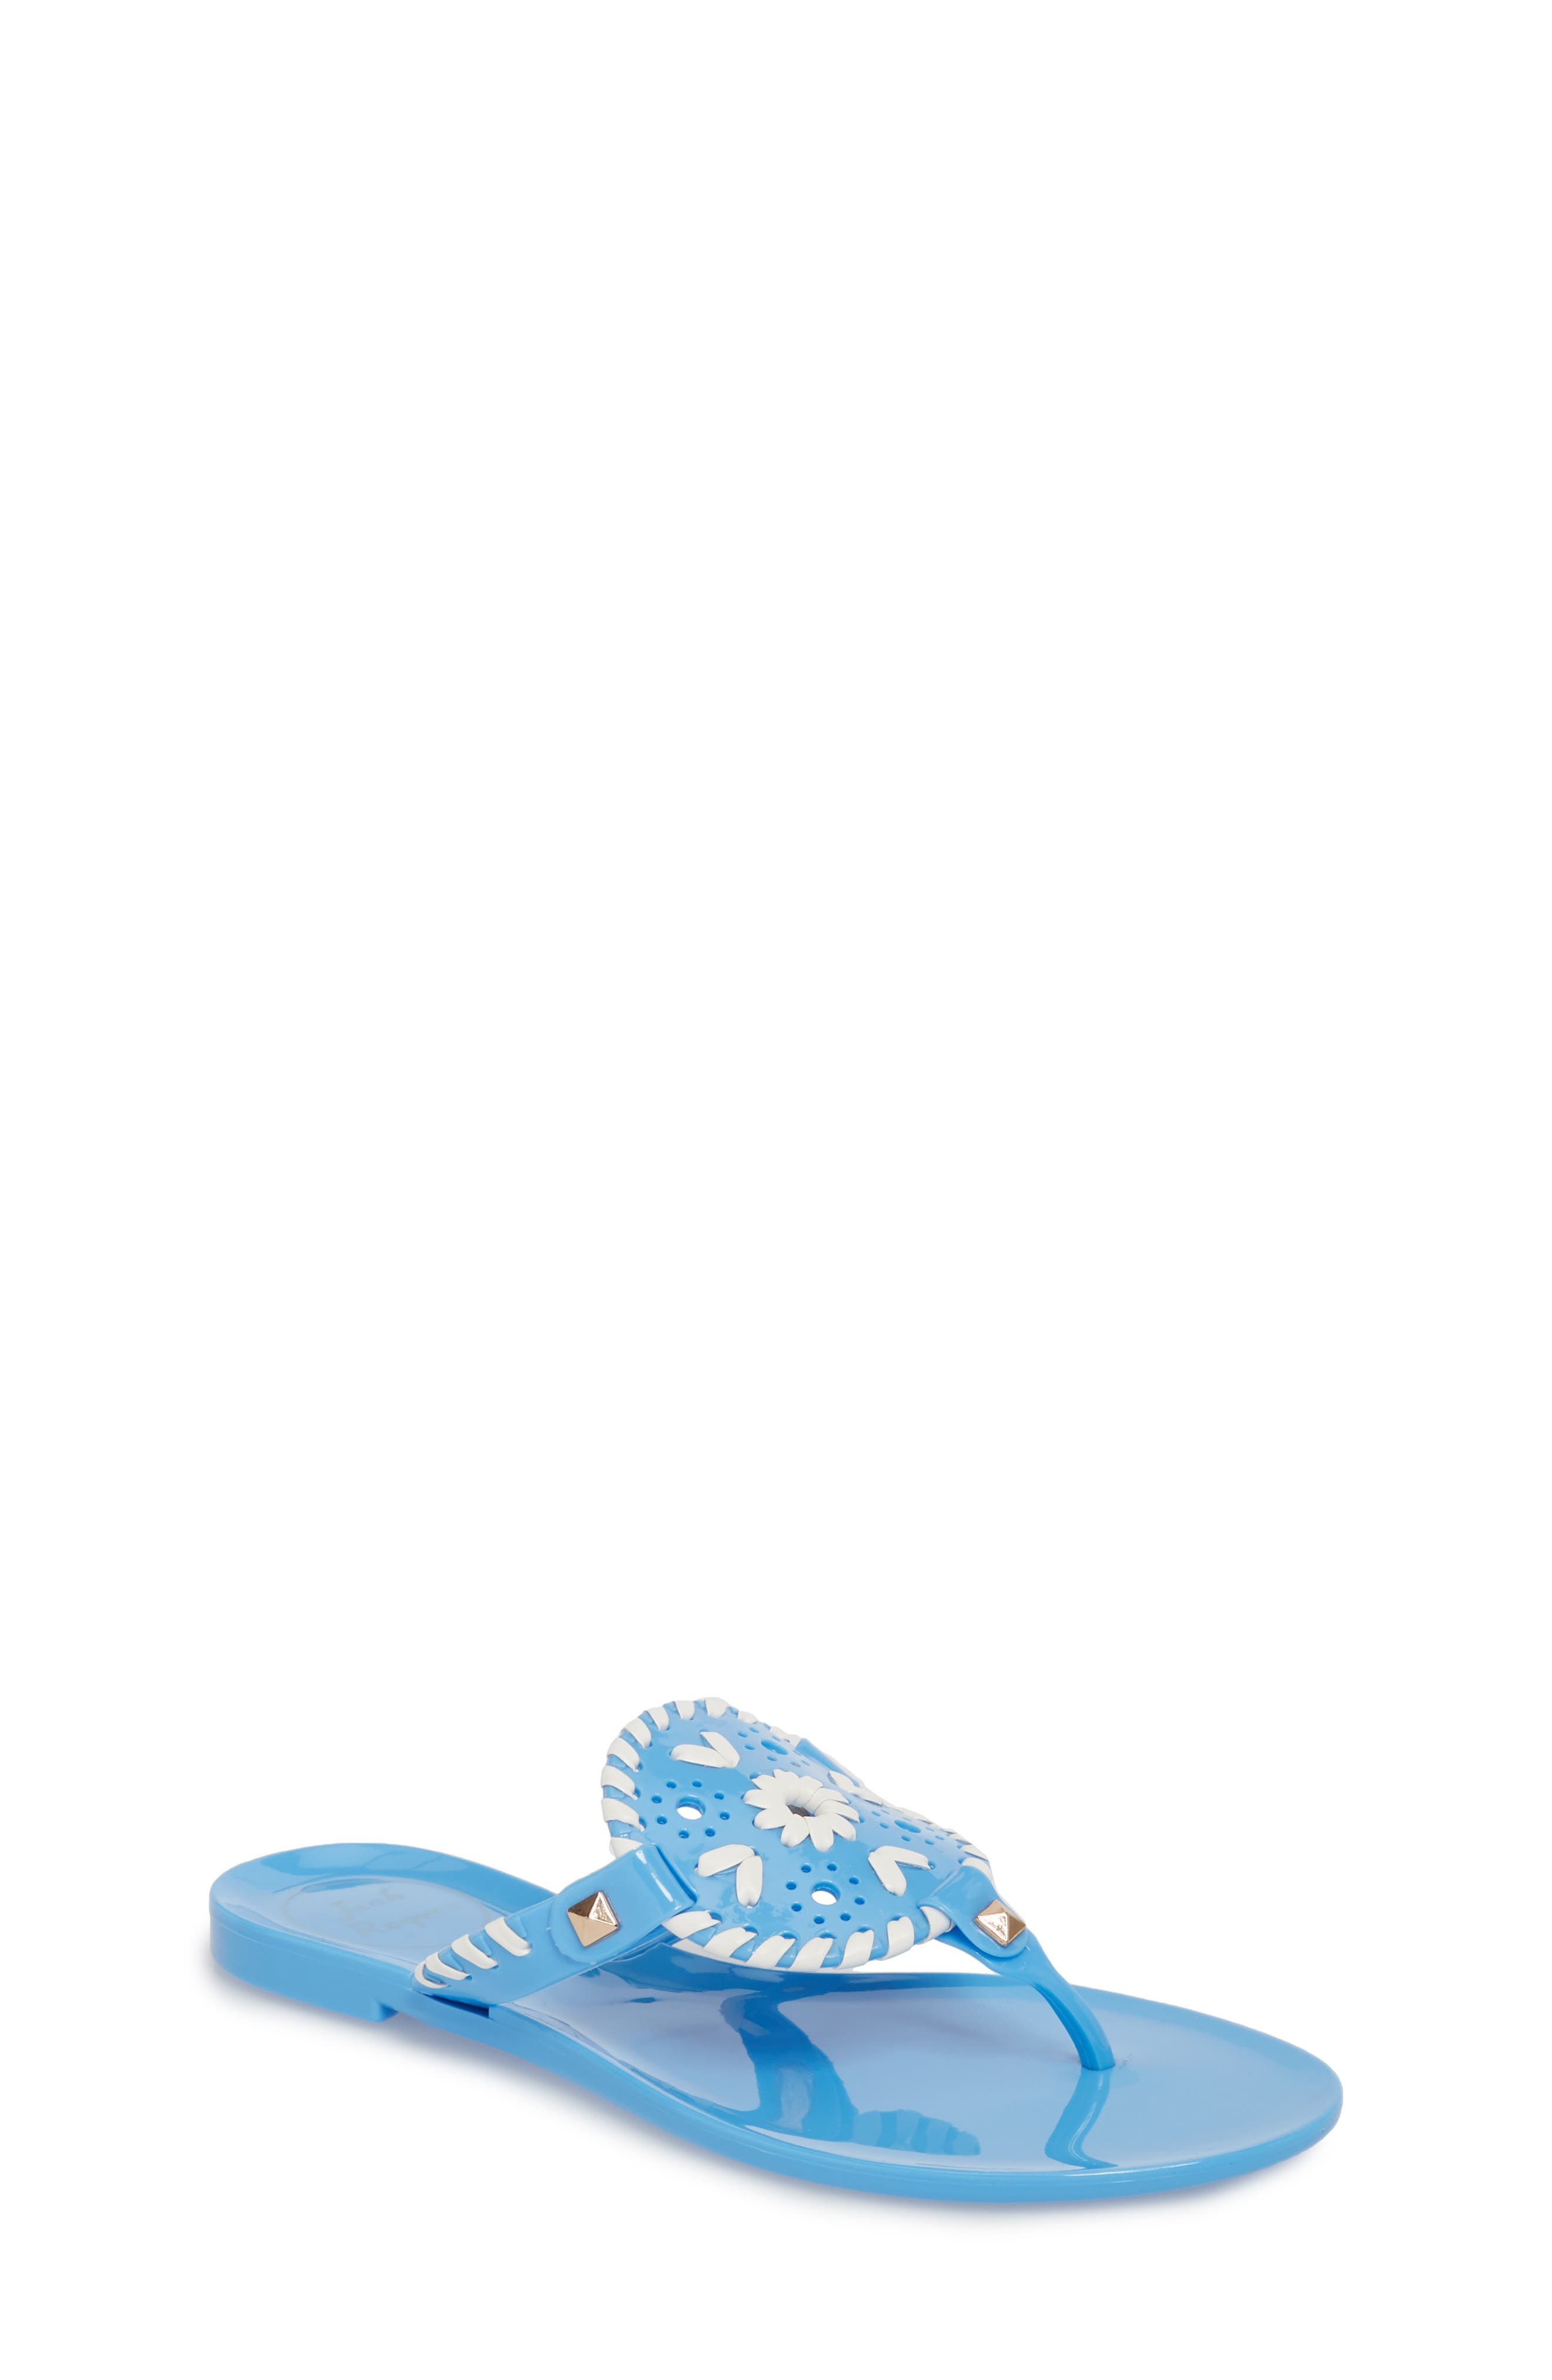 'Miss Georgica' Jelly Flip Flop,                         Main,                         color, FRENCH BLUE/ WHITE JELLY